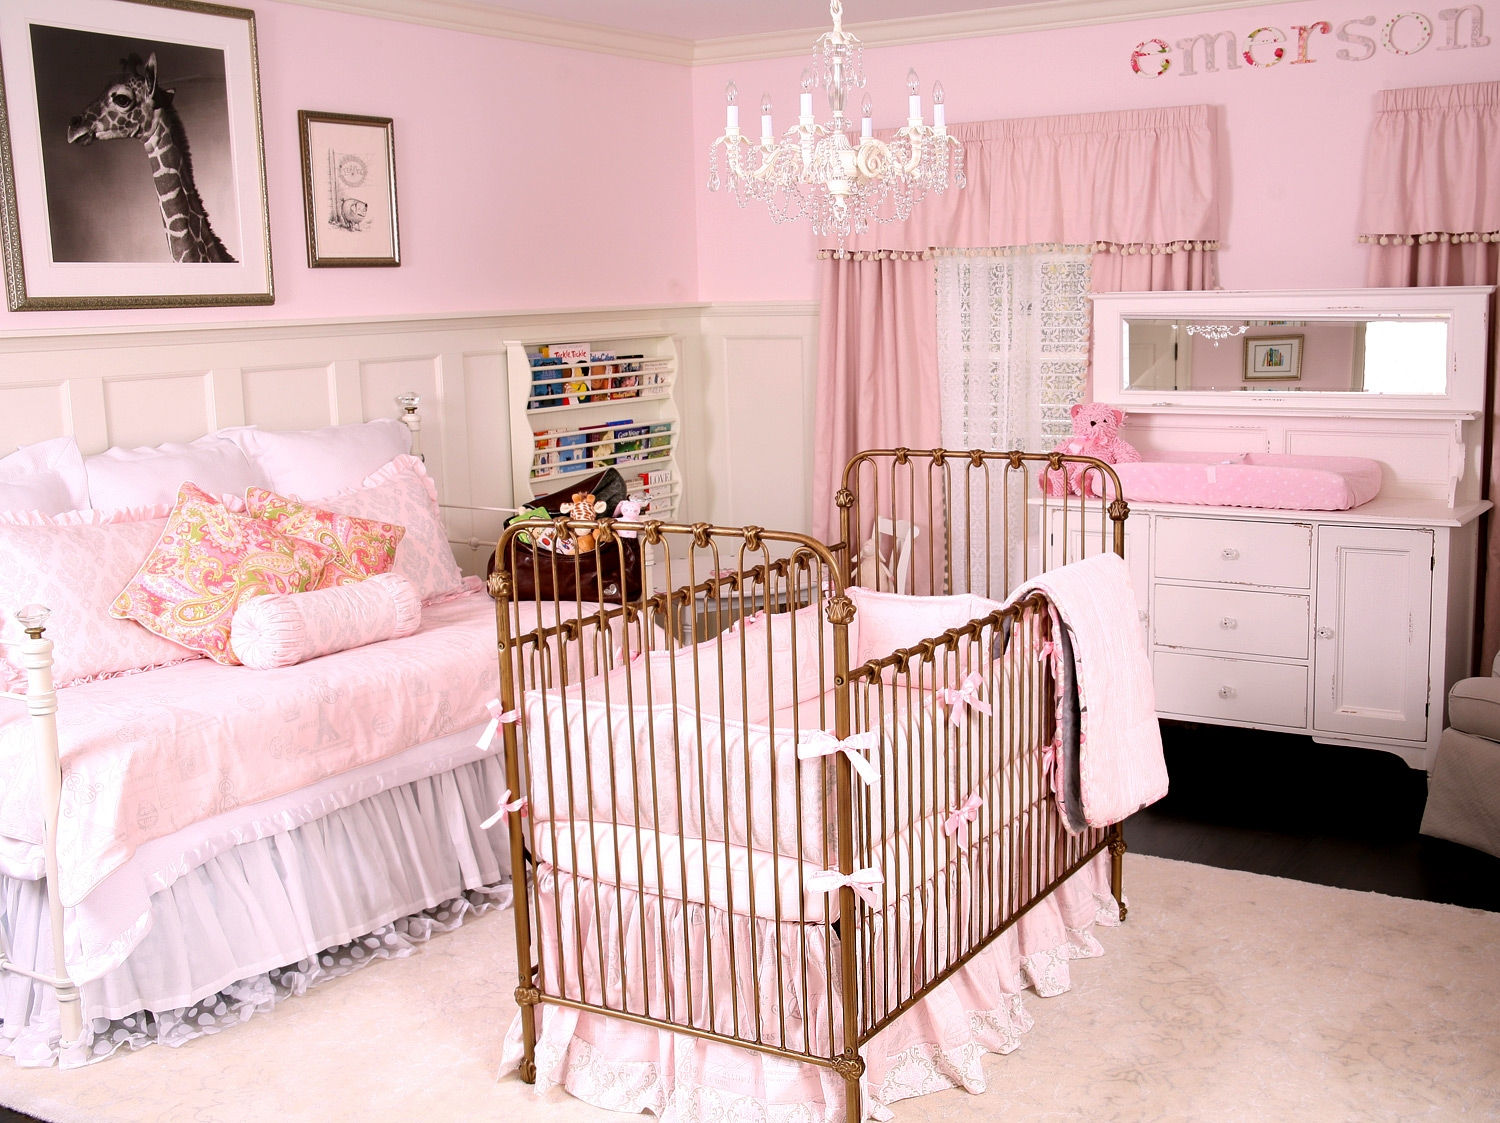 Adorable Pink Gray Ba Room Decor Vintage Crystal Chandelier Pink Inside Crystal Chandeliers For Baby Girl Room (View 25 of 25)